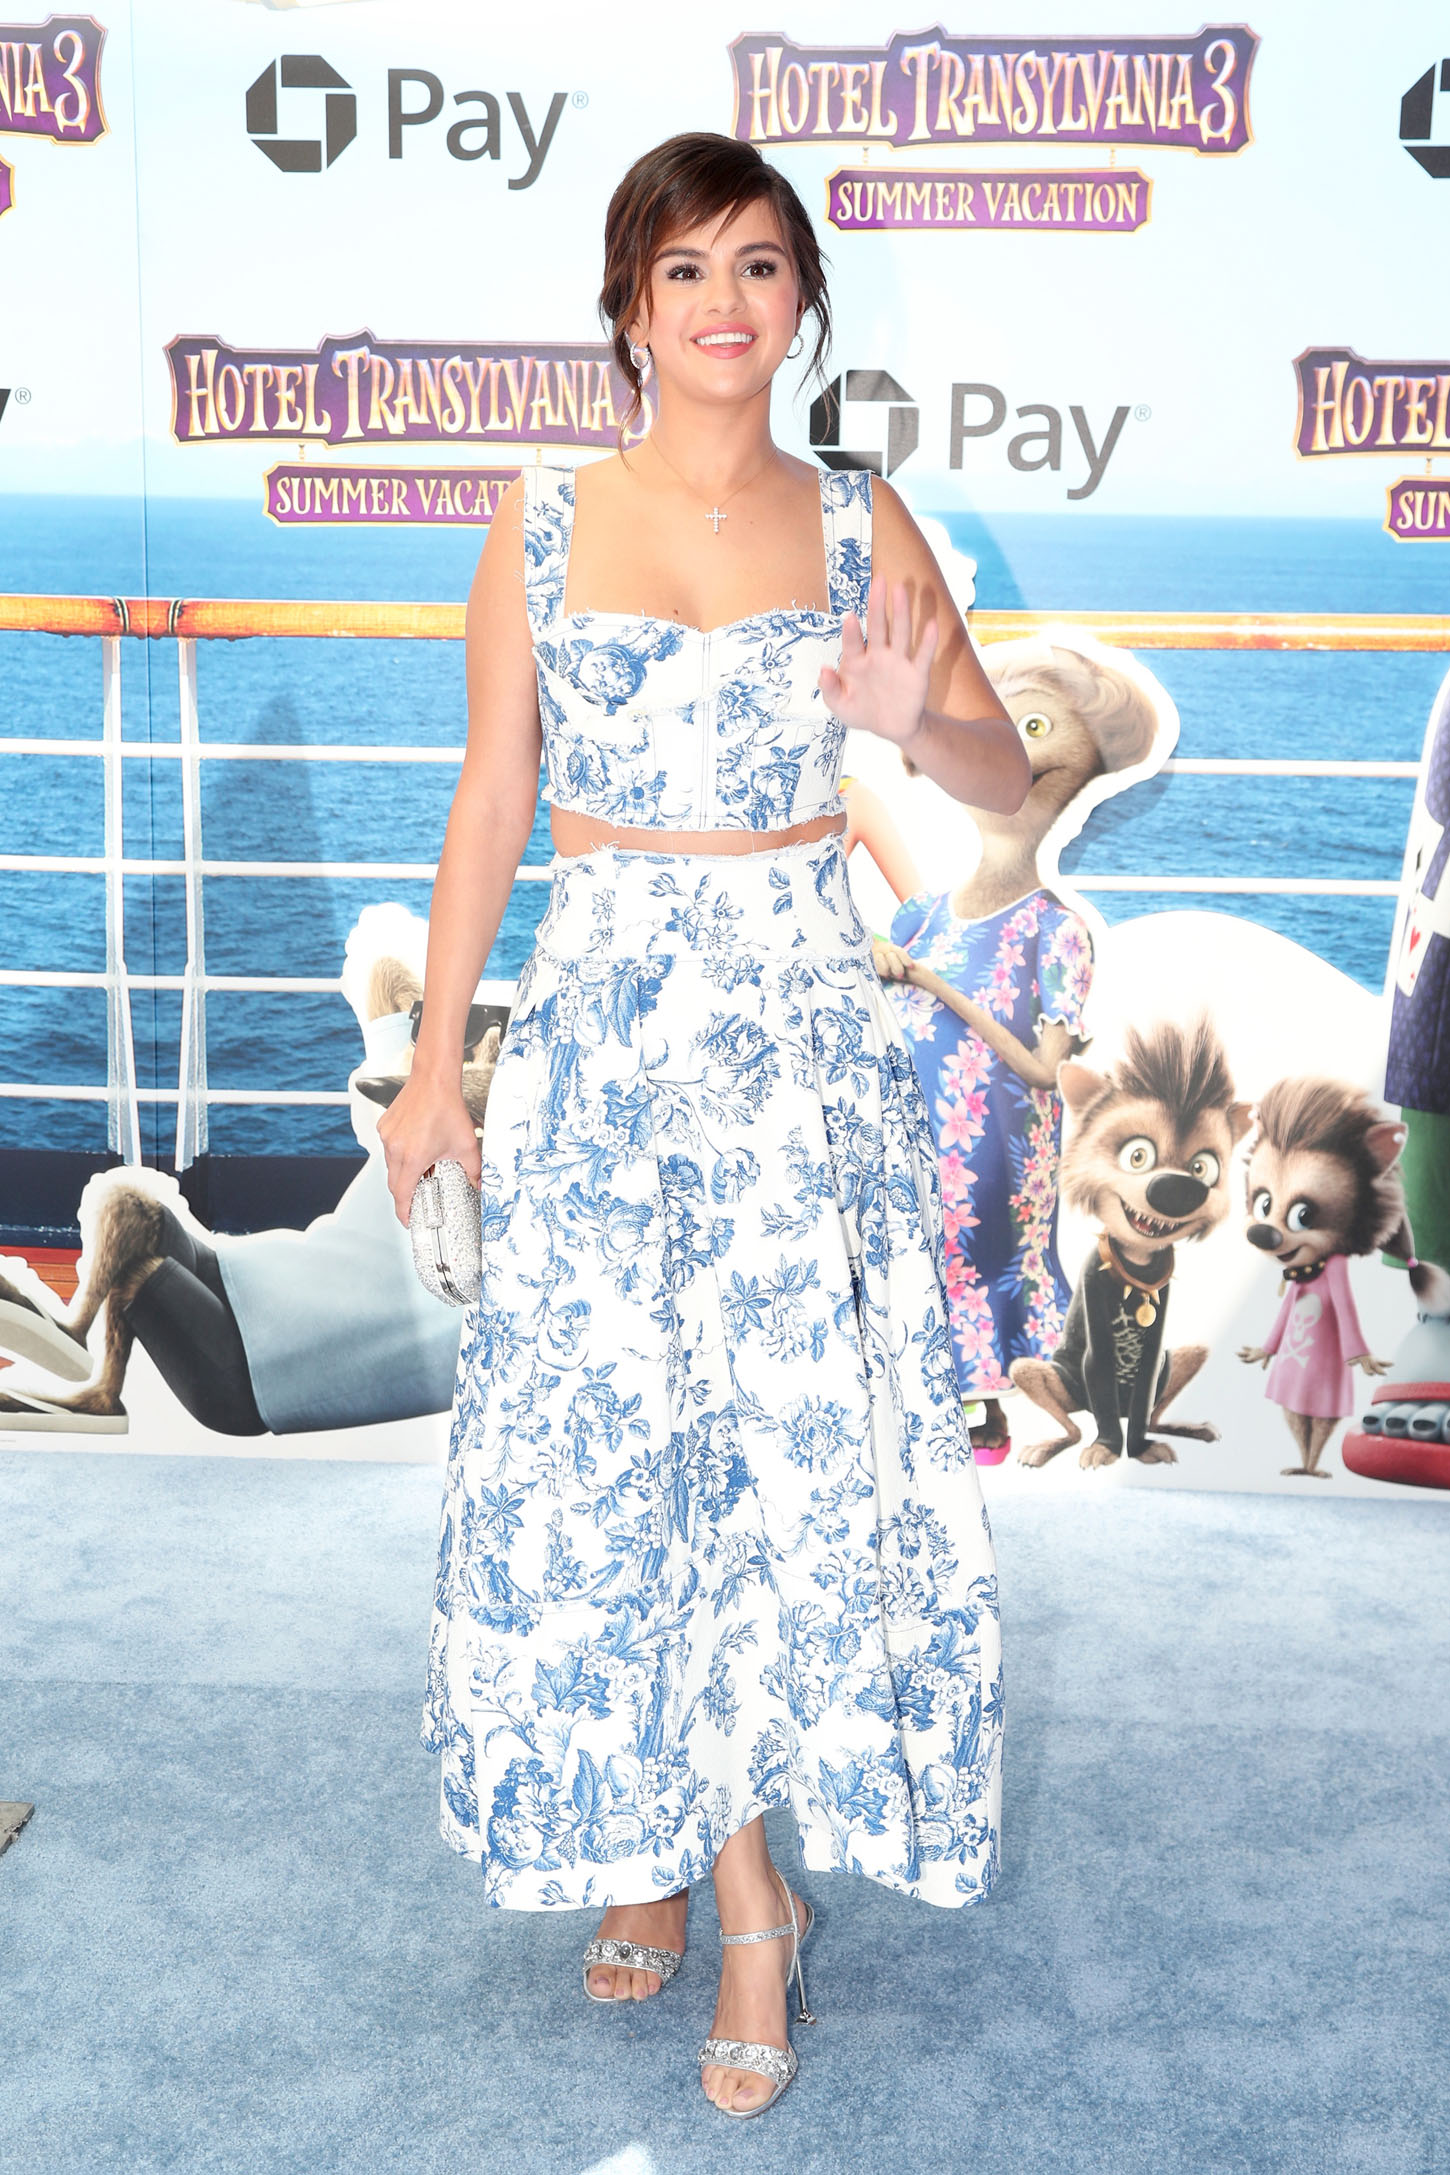 WESTWOOD, CA - JUNE 30:  Selena Gomez attends the Columbia Pictures and Sony Pictures Animation's world premiere of 'Hotel Transylvania 3: Summer Vacation' at Regency Village Theatre on June 30, 2018 in Westwood, California.  (Photo by Christopher Polk/Getty Images)